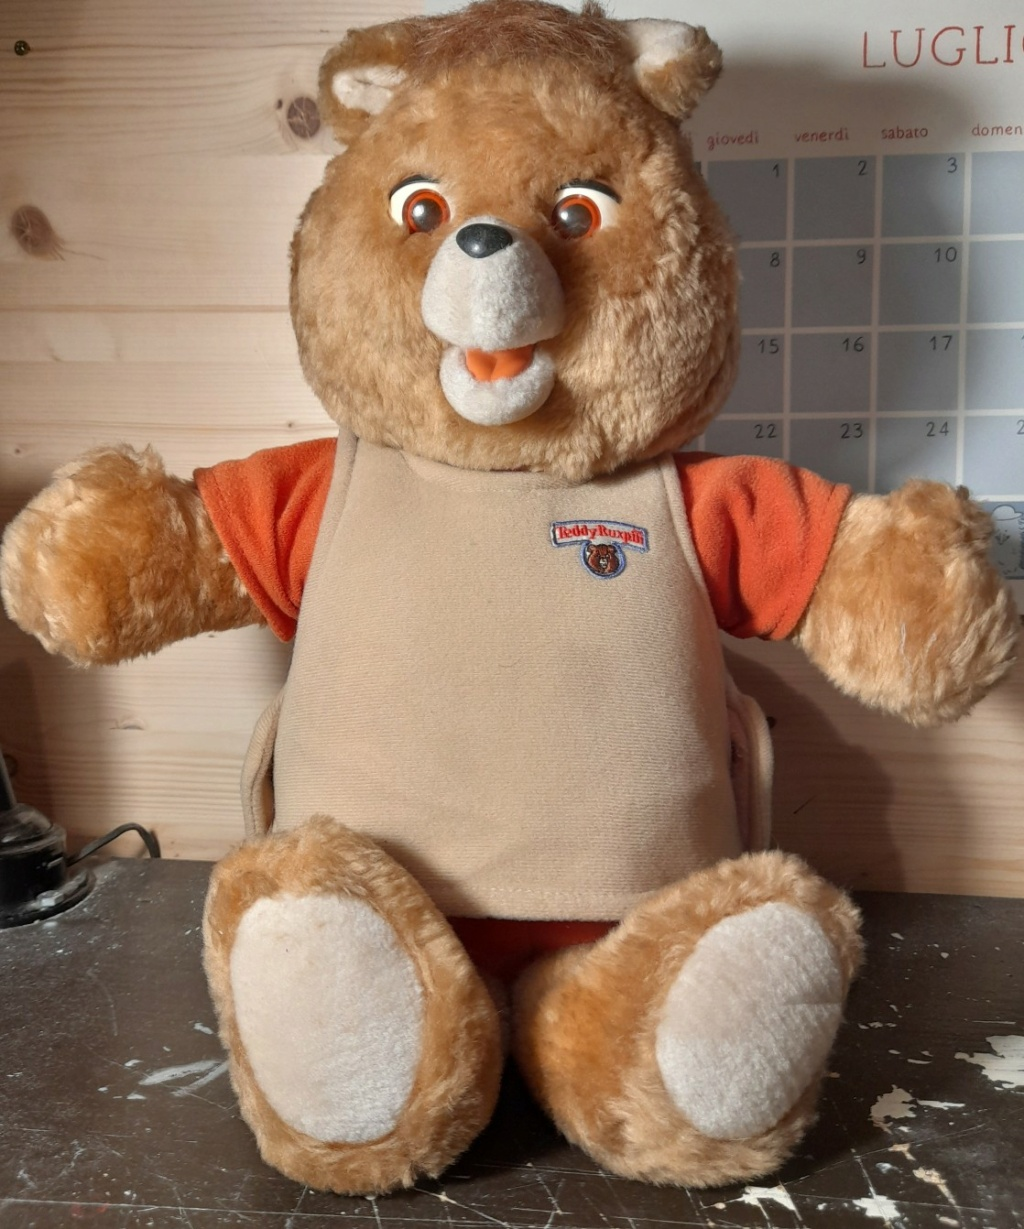 TEDDY RUXPIN ANNO 1985 WOW WORLDS OF WONDERS 20210712